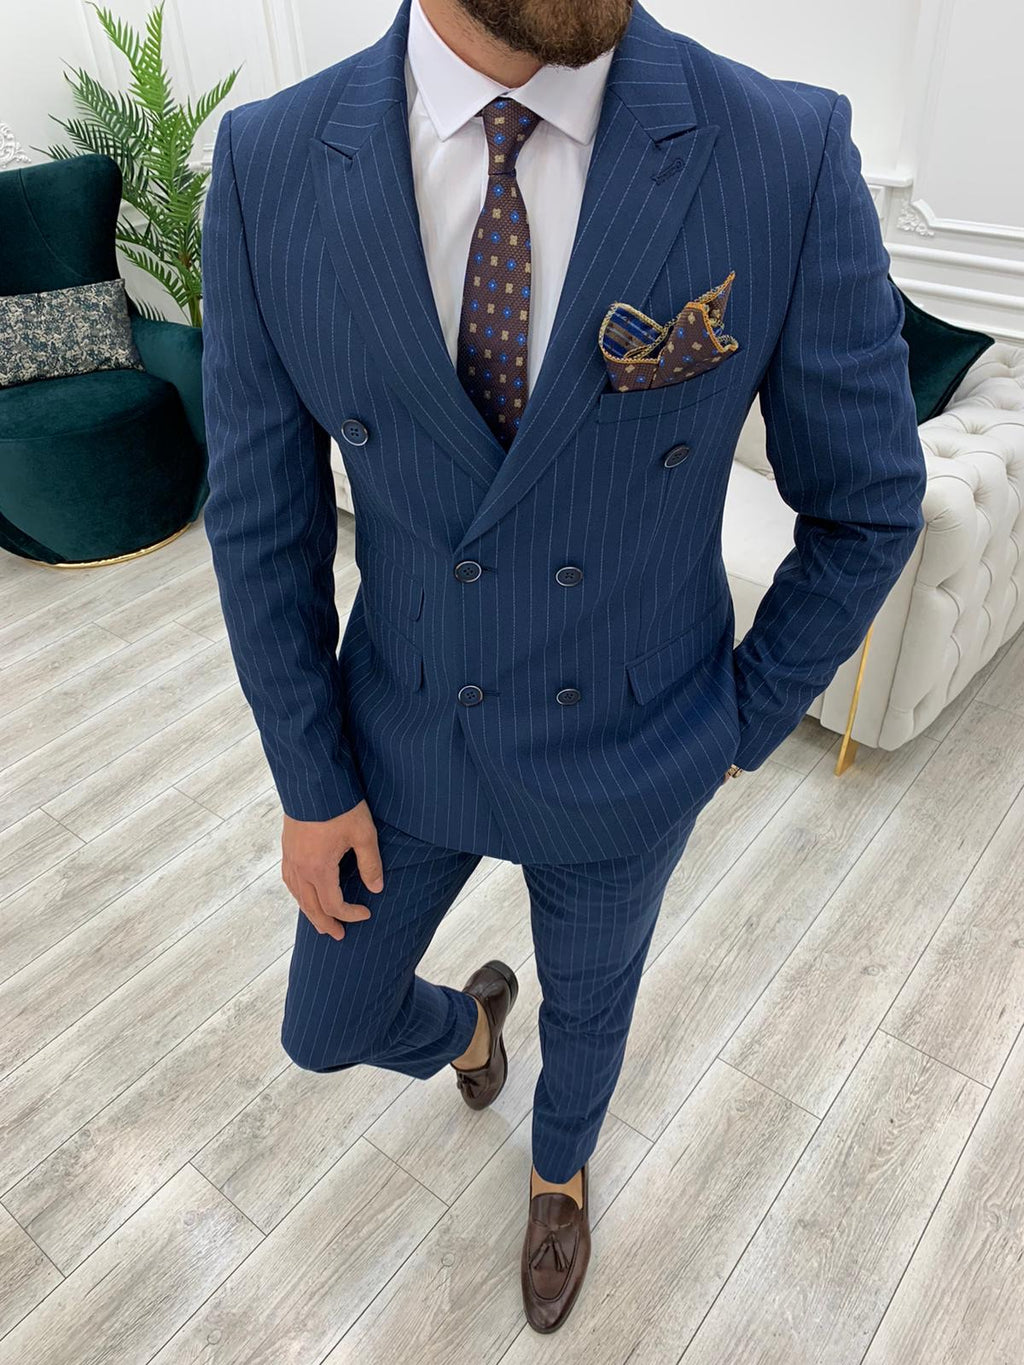 Furino Navy Blue Slim Fit Double Breasted Pinstripe Suit